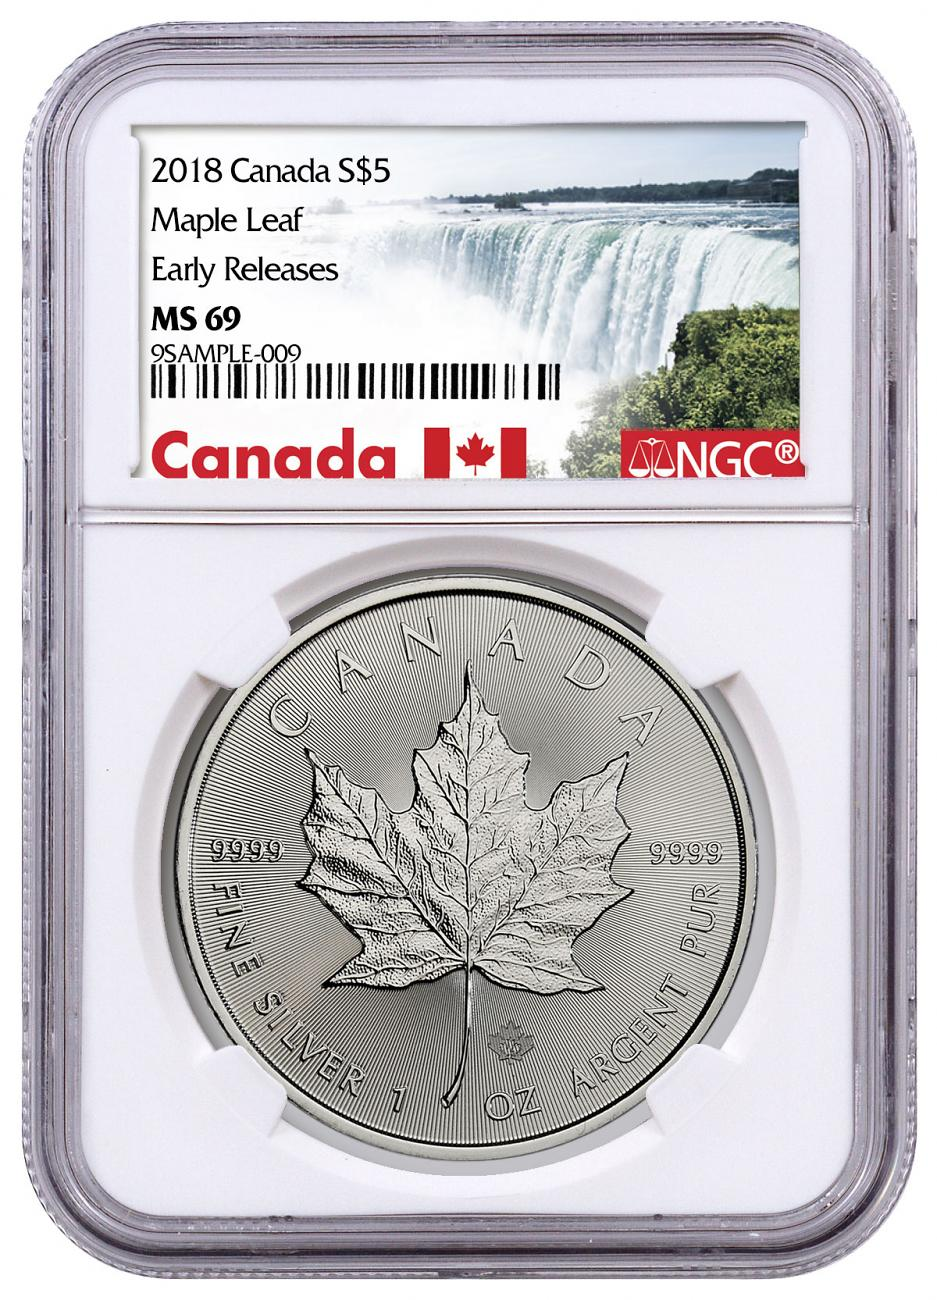 2018 Canada 1 oz Silver Maple Leaf $5 Coin NGC MS69 ER Exclusive Canada Label